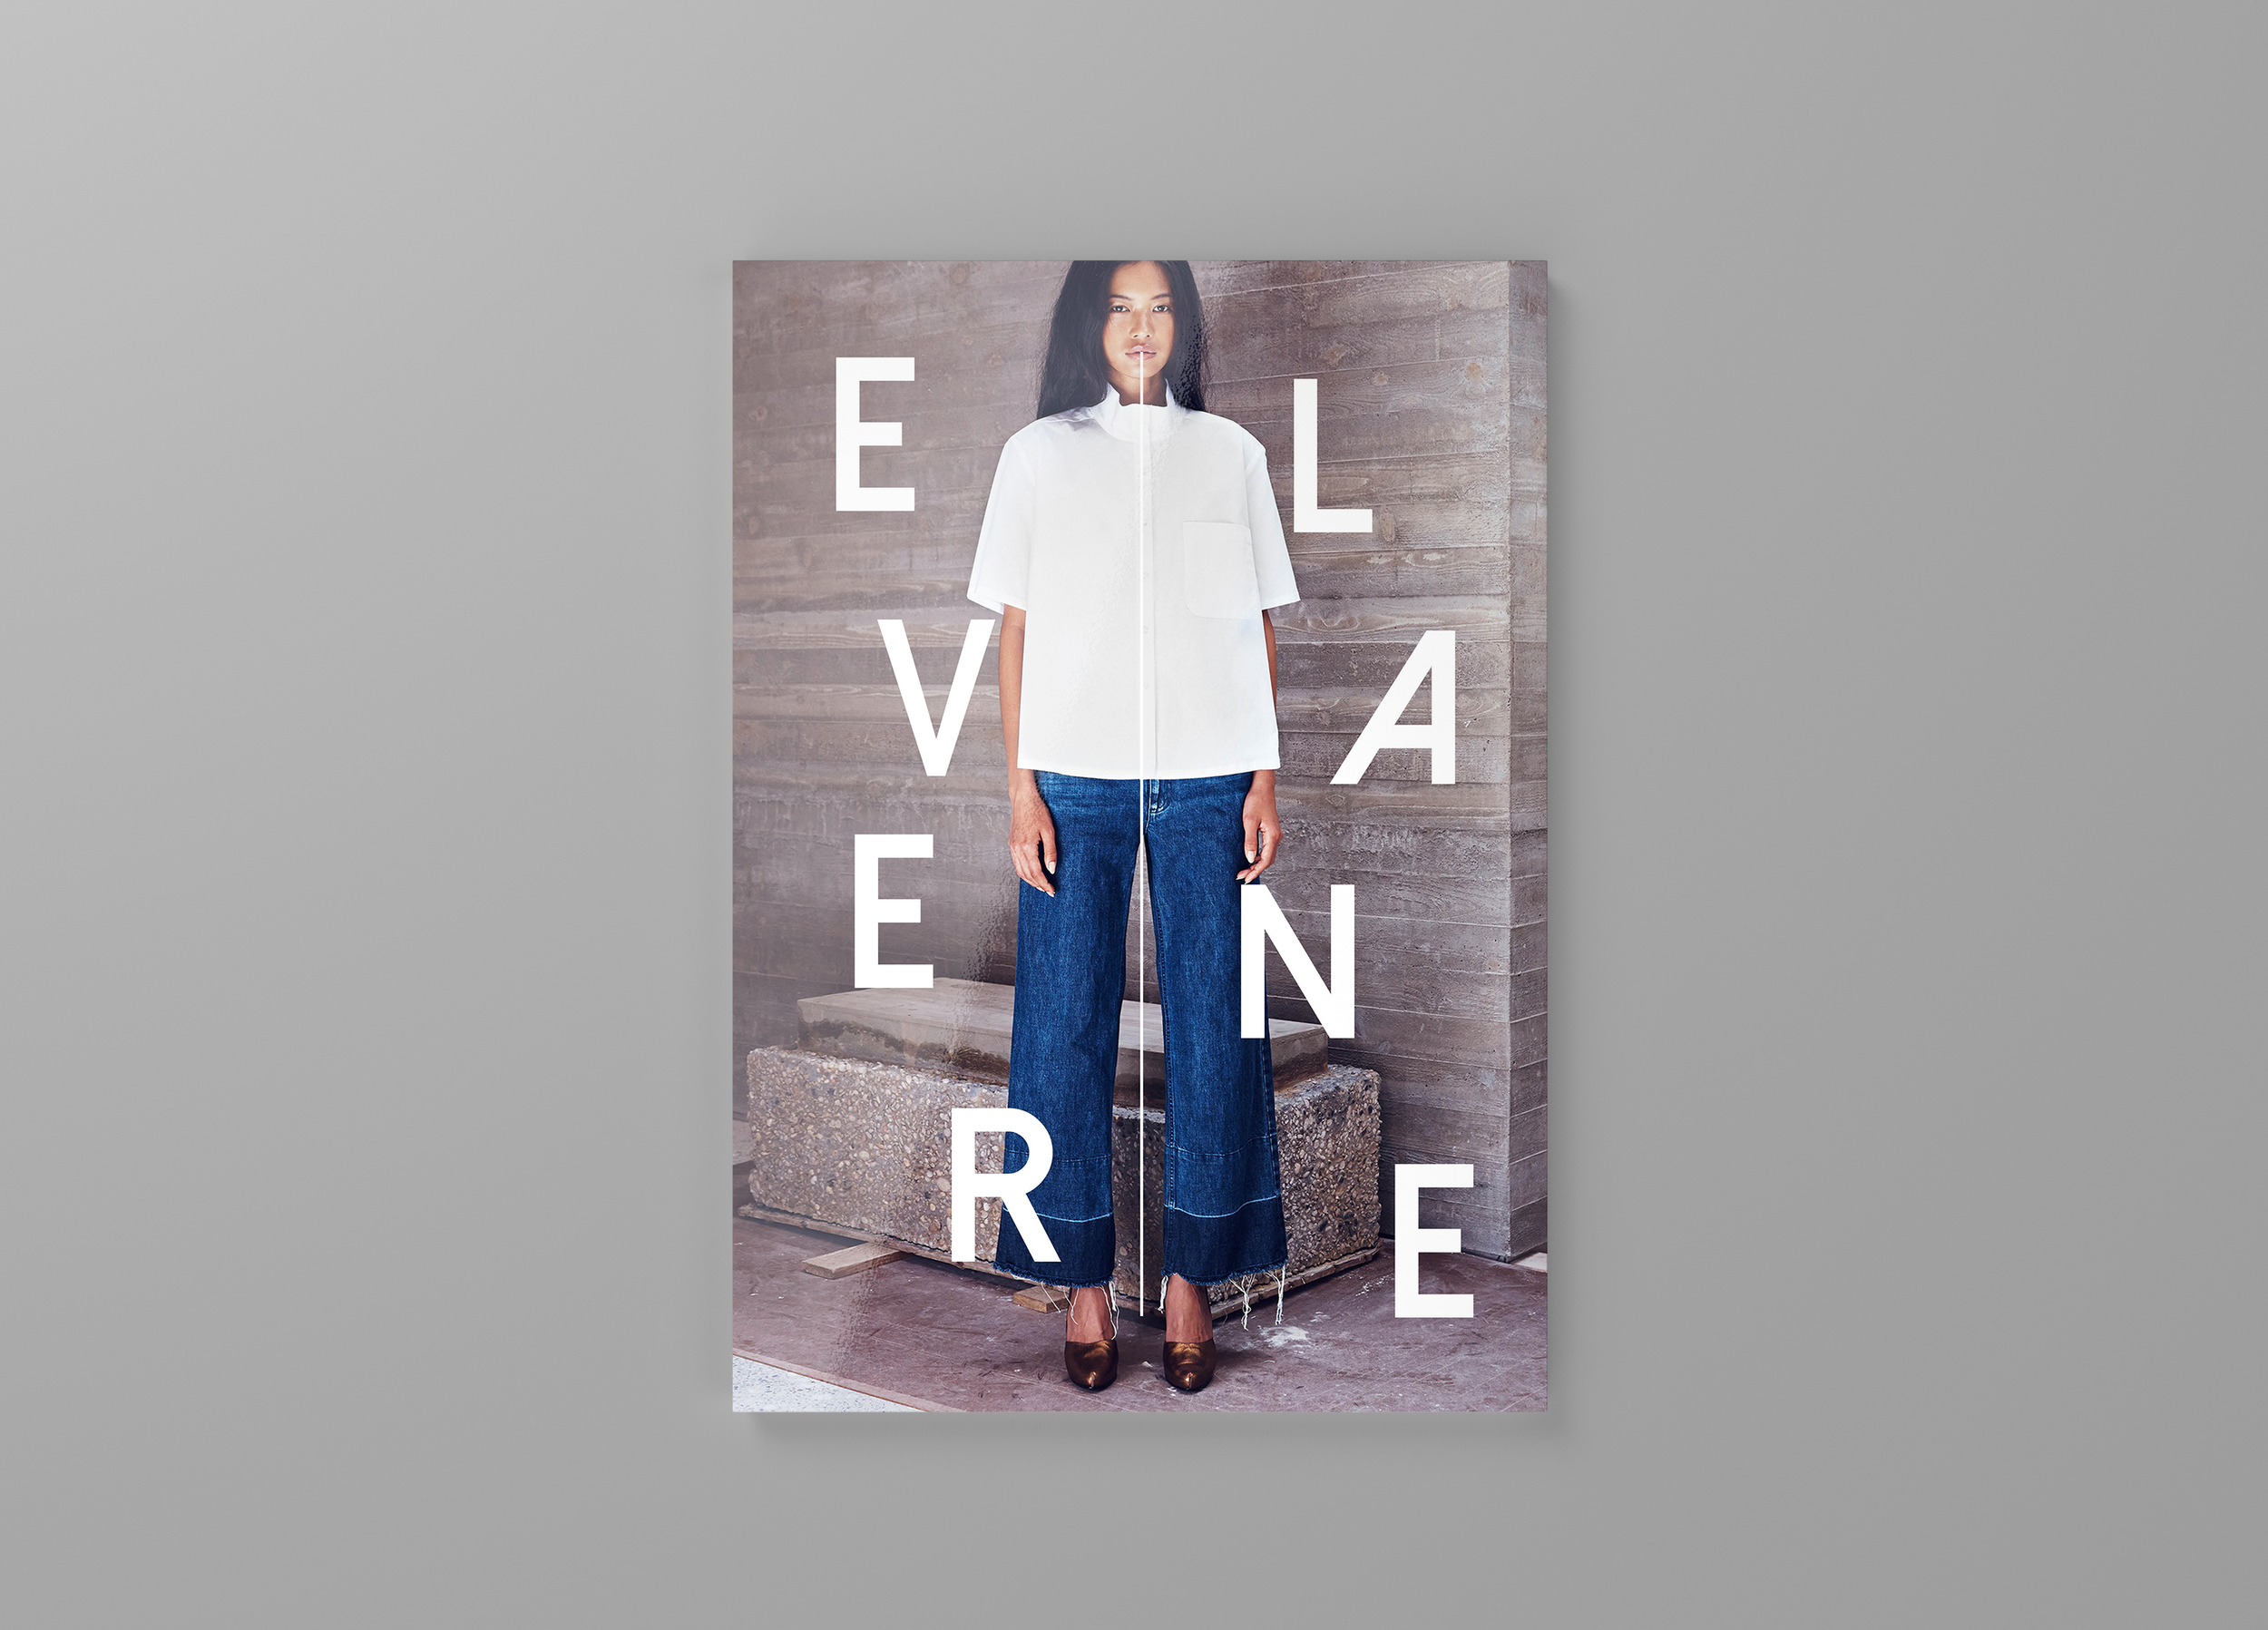 This project was created solely by Brynn McKinstry for Professional Portfolio Practices. It was based off the online retailer, Everlane , and how they can expand upon their current product offering to include up-cycled denim jeans.